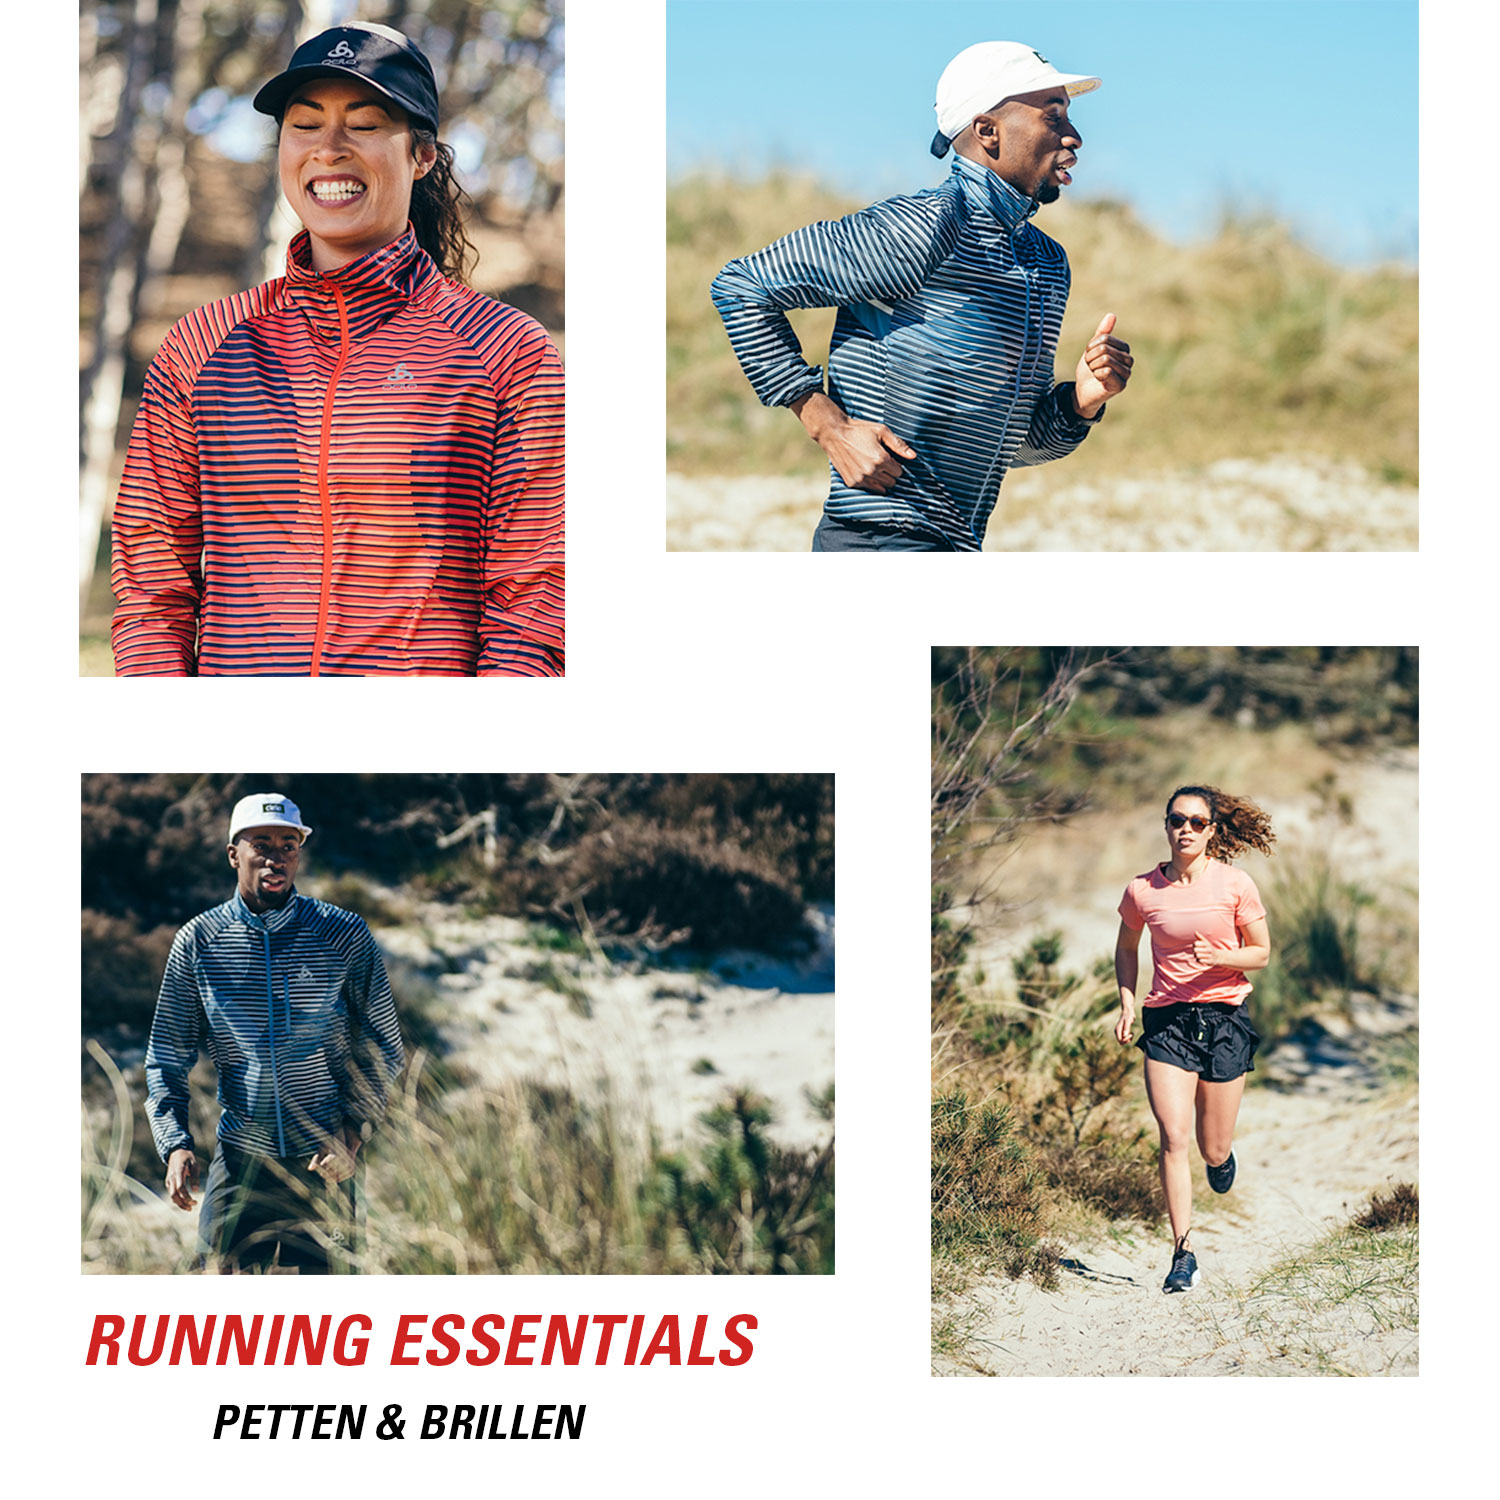 Running essentials: petten en brillen